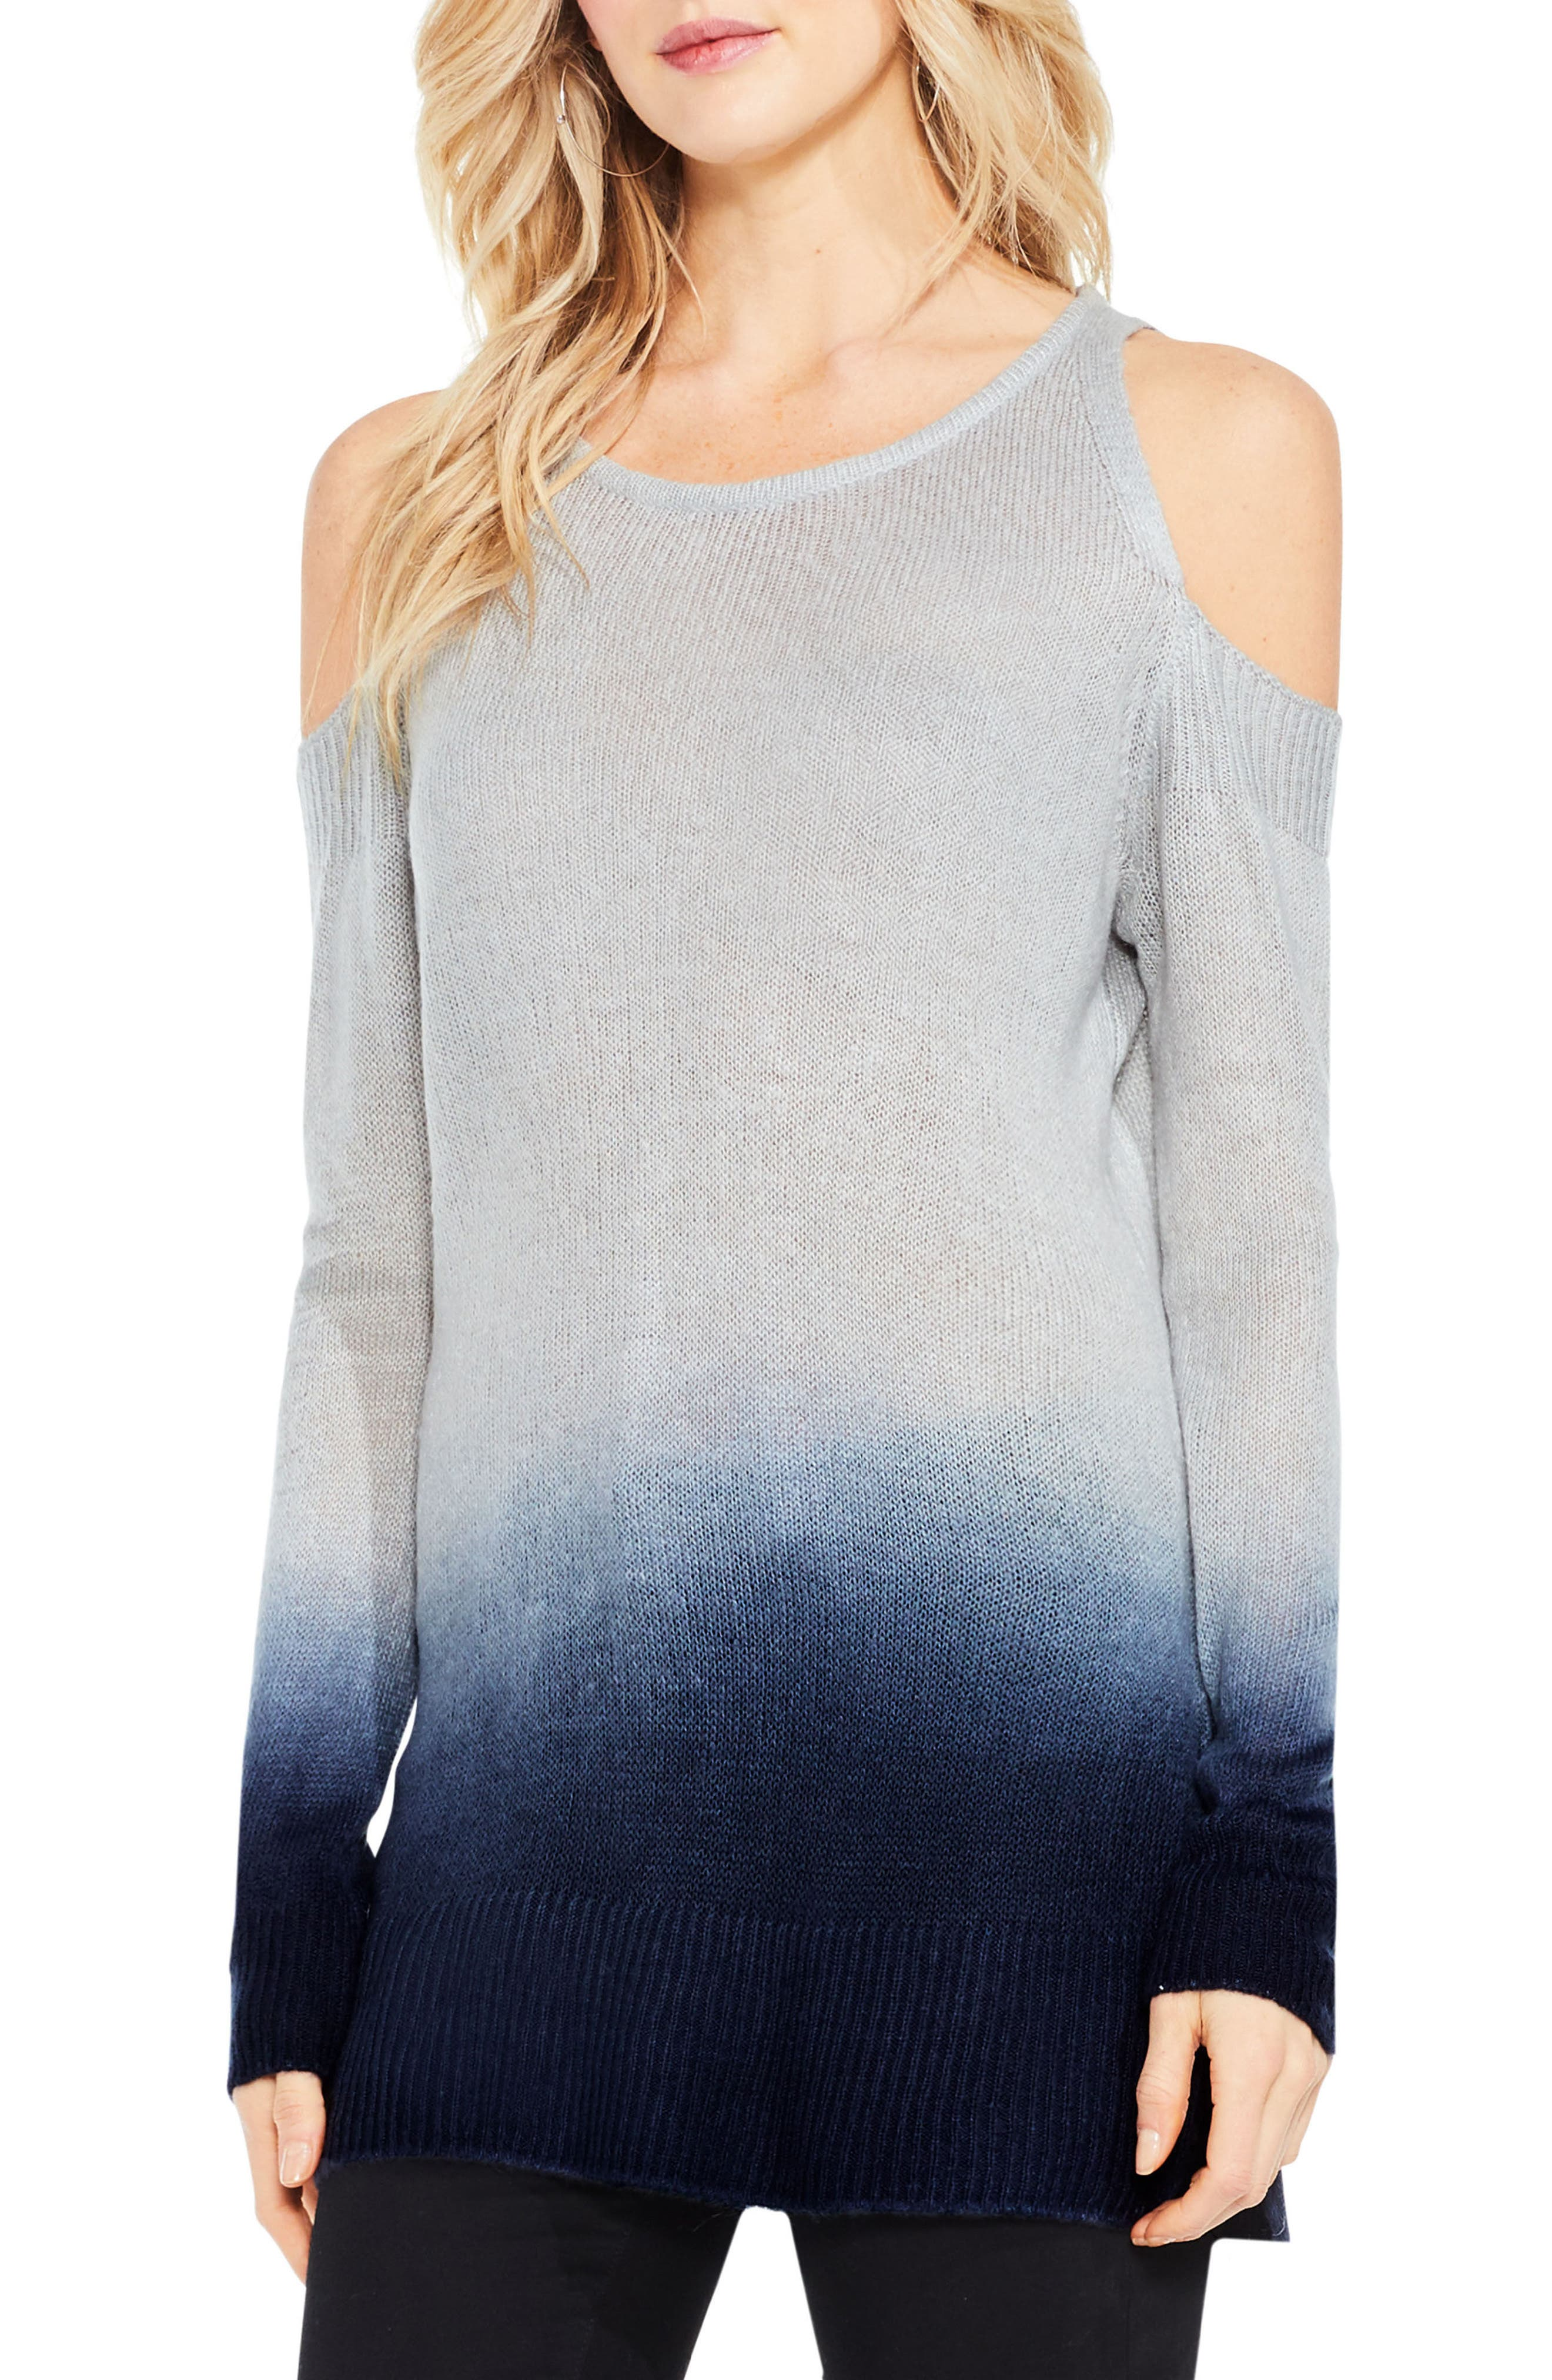 Main Image - Two by Vince Camuto Cold Shoulder Ombré Sweater